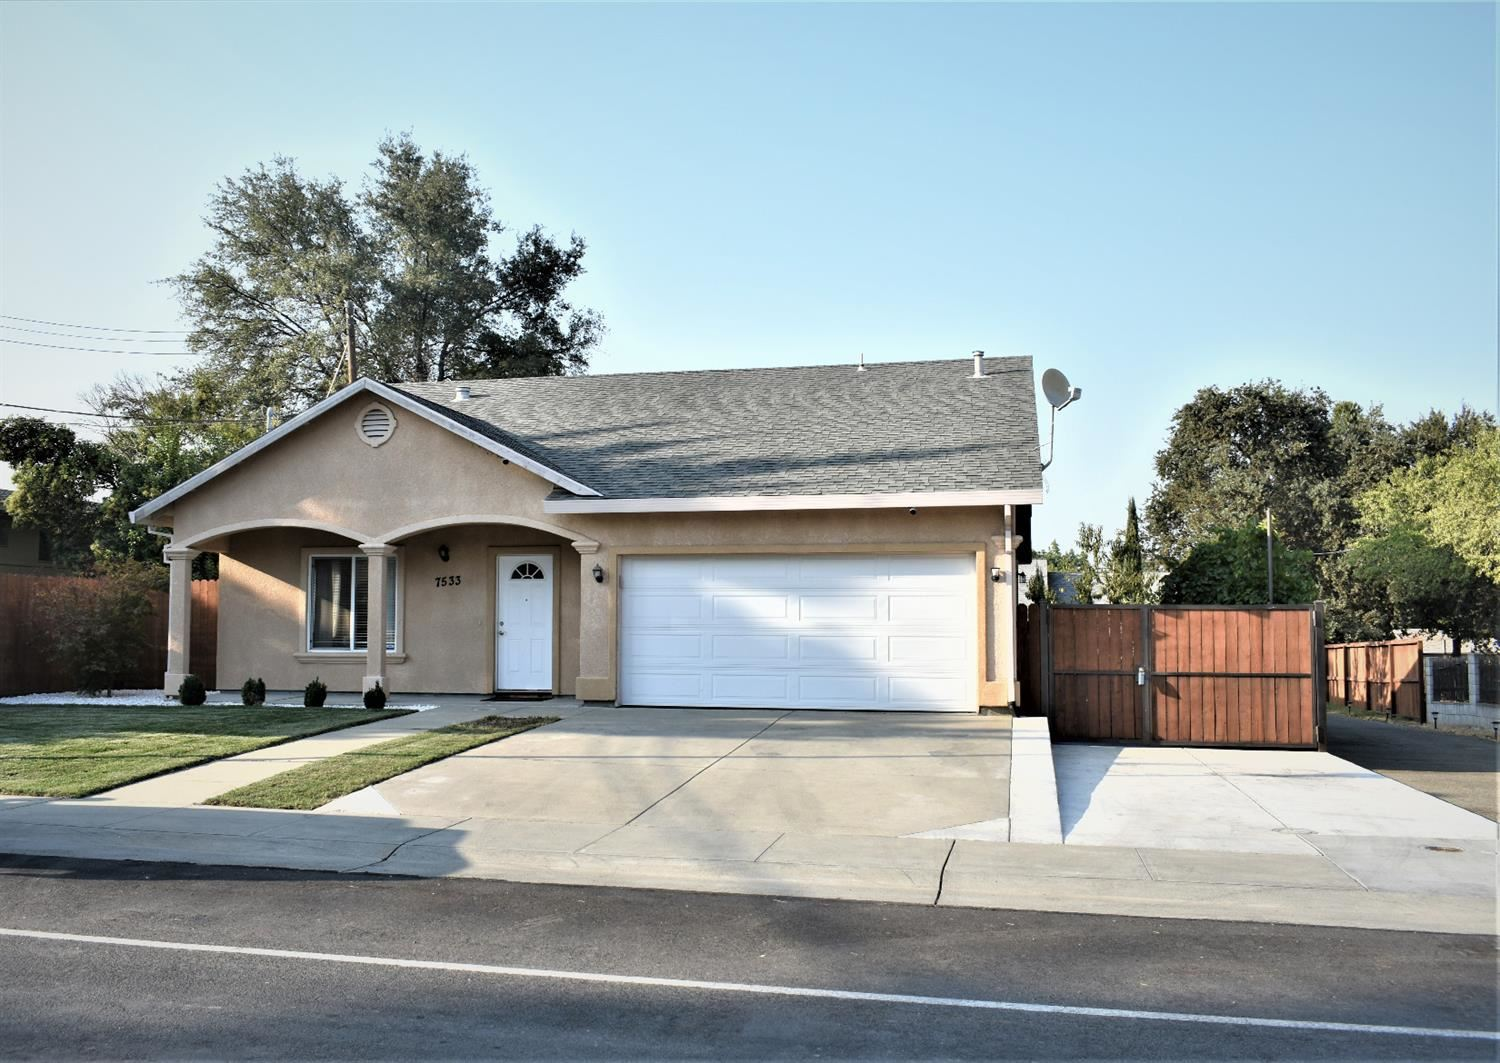 7533 Sycamore Drive, Citrus Heights, CA 95610 - #: 20055346